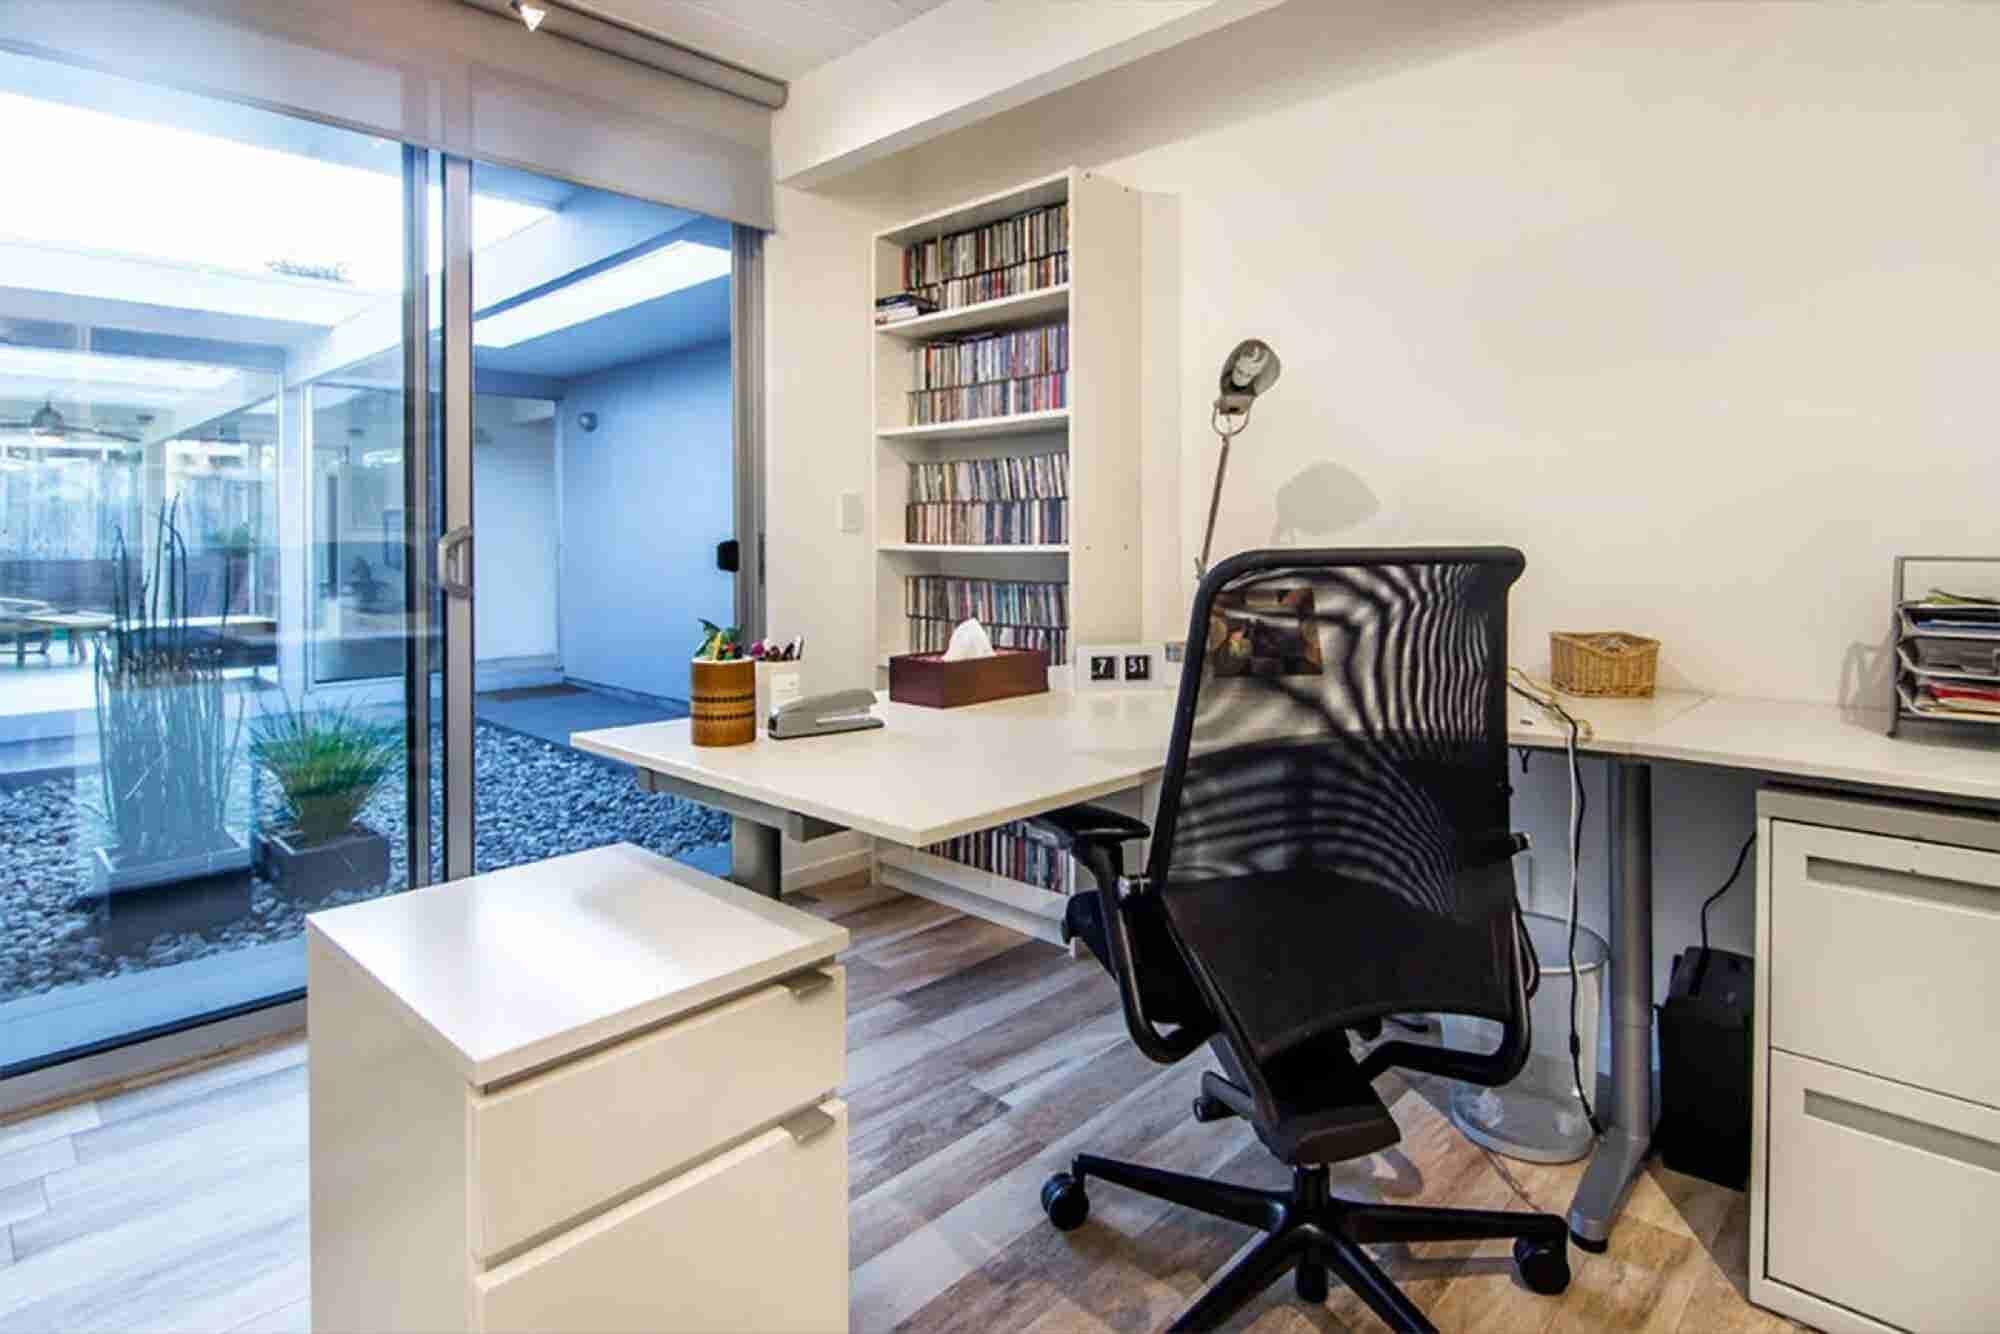 Work Smarter: 8 Ways to Boost Focus in a Home Office